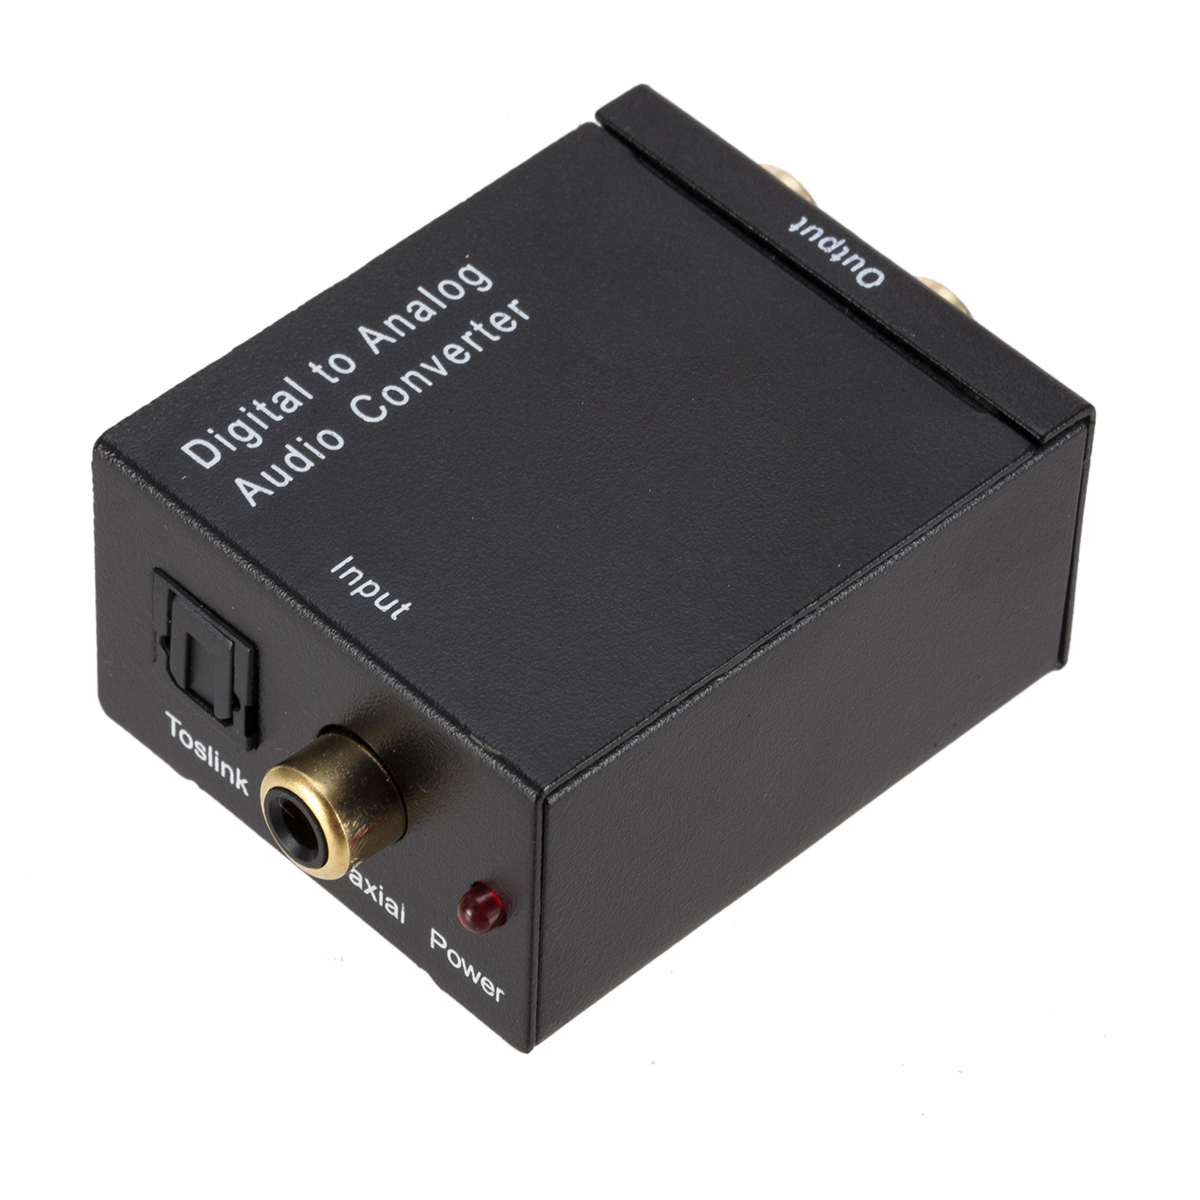 Grwibeou digital to analog audio converter fiber toslink coaxial - Audio dan video mudah alih - Foto 4